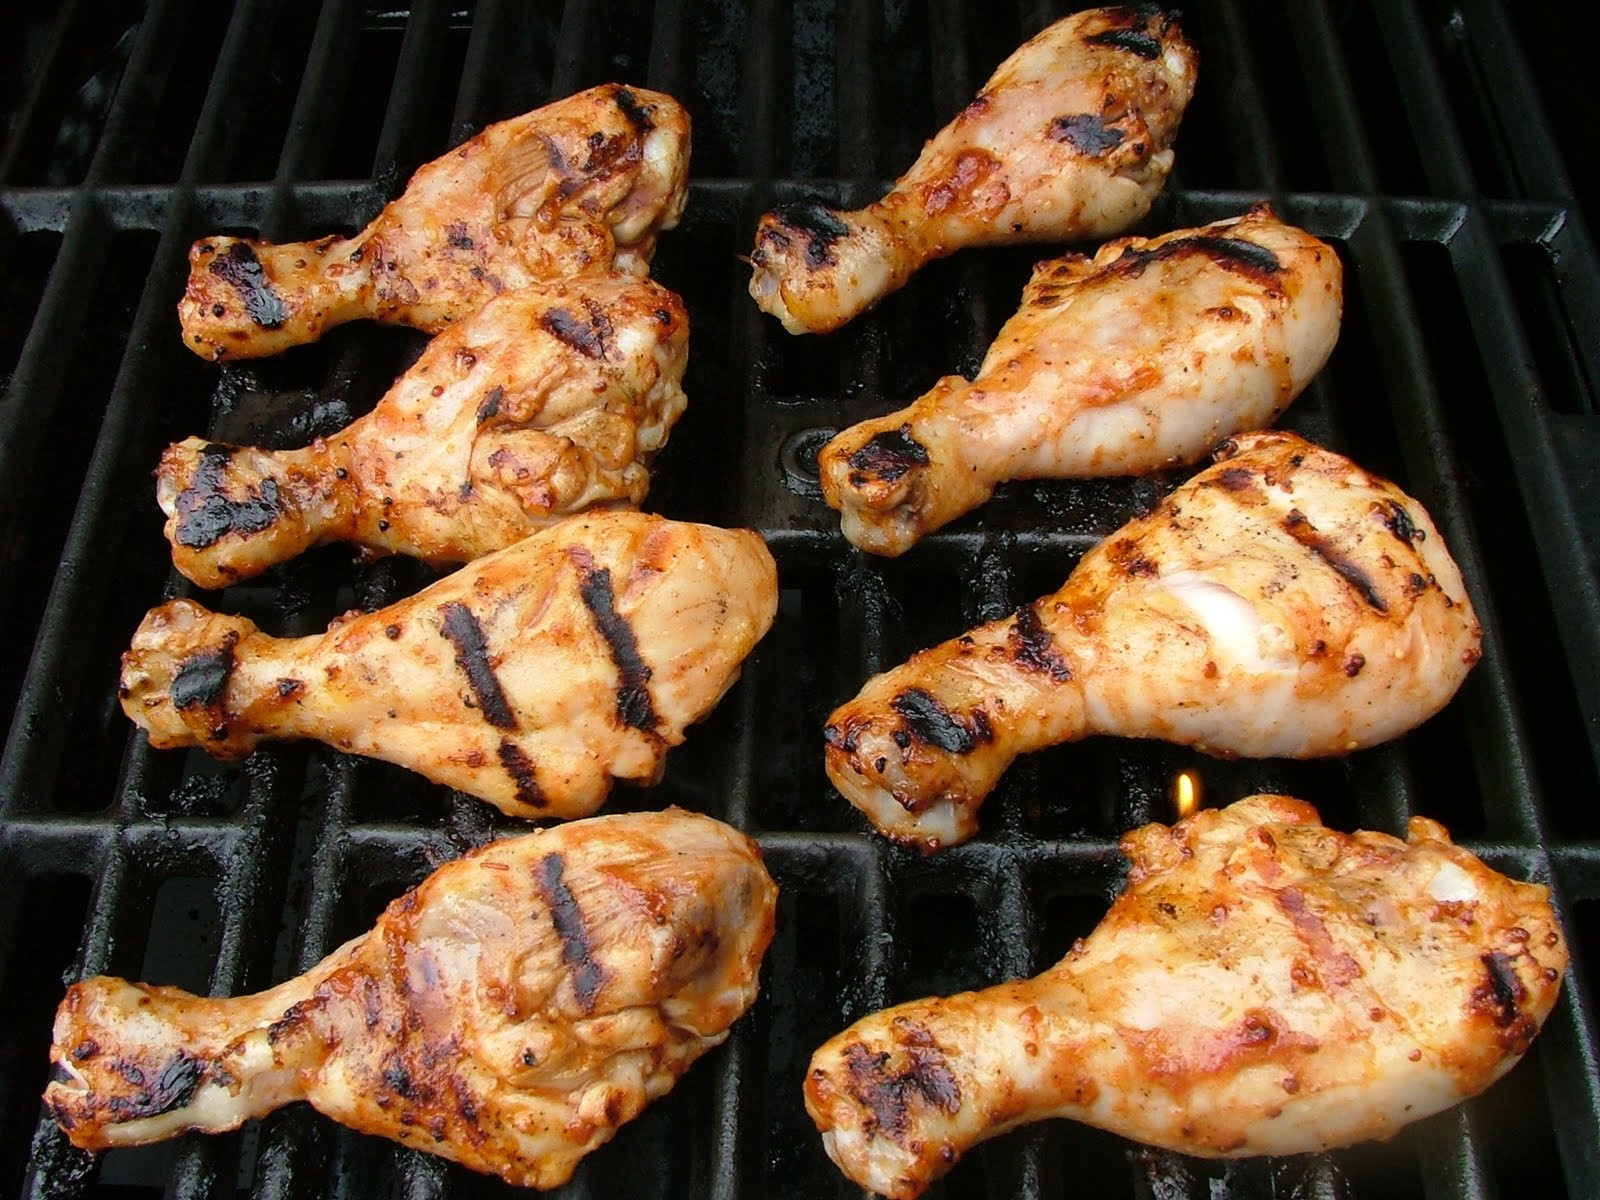 Chicken Legs On The Grill  Electric Grill Grill Chicken Legs Electric Grill